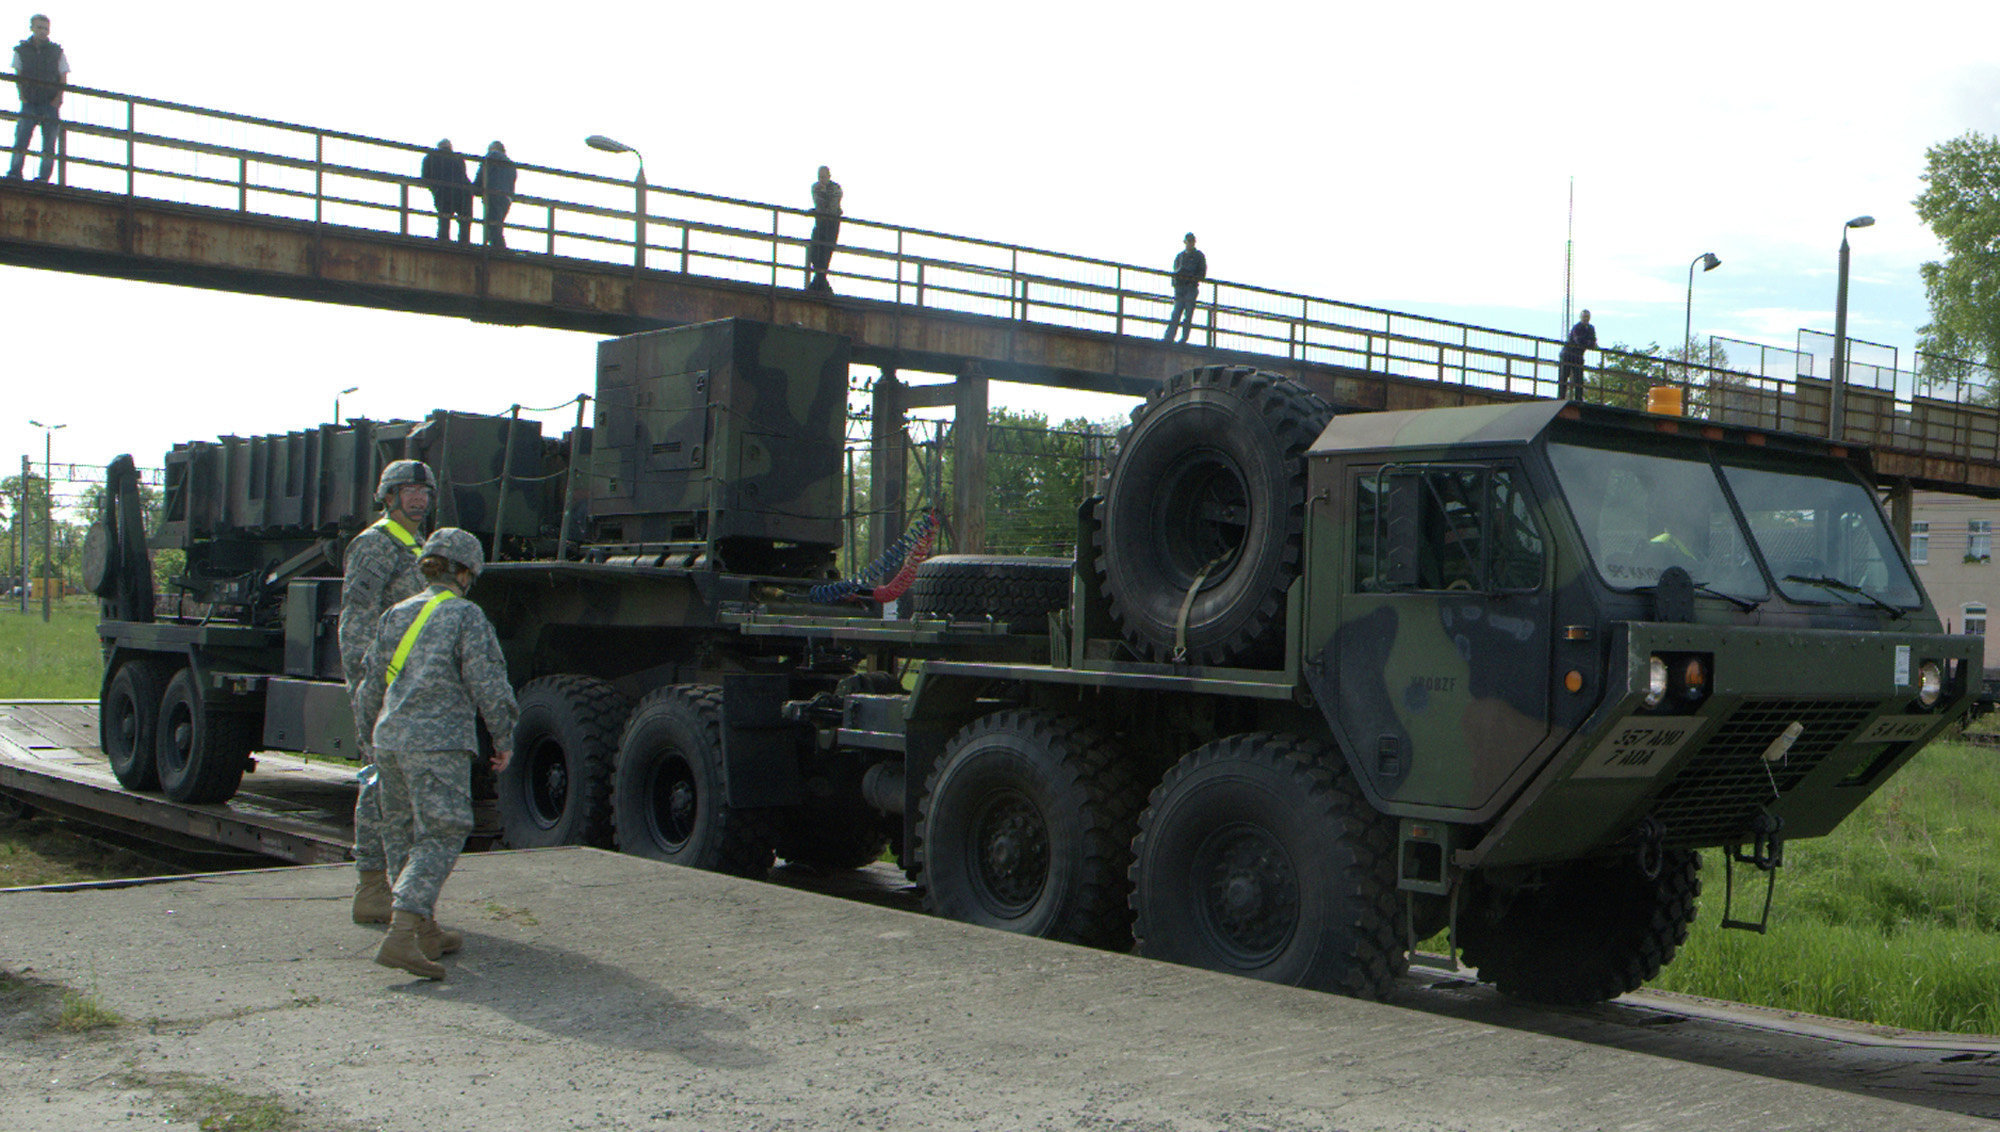 Soldiers watch a US Patriot missile being unloaded in a Polish Army military unit in Morag, northern Poland. File photo.